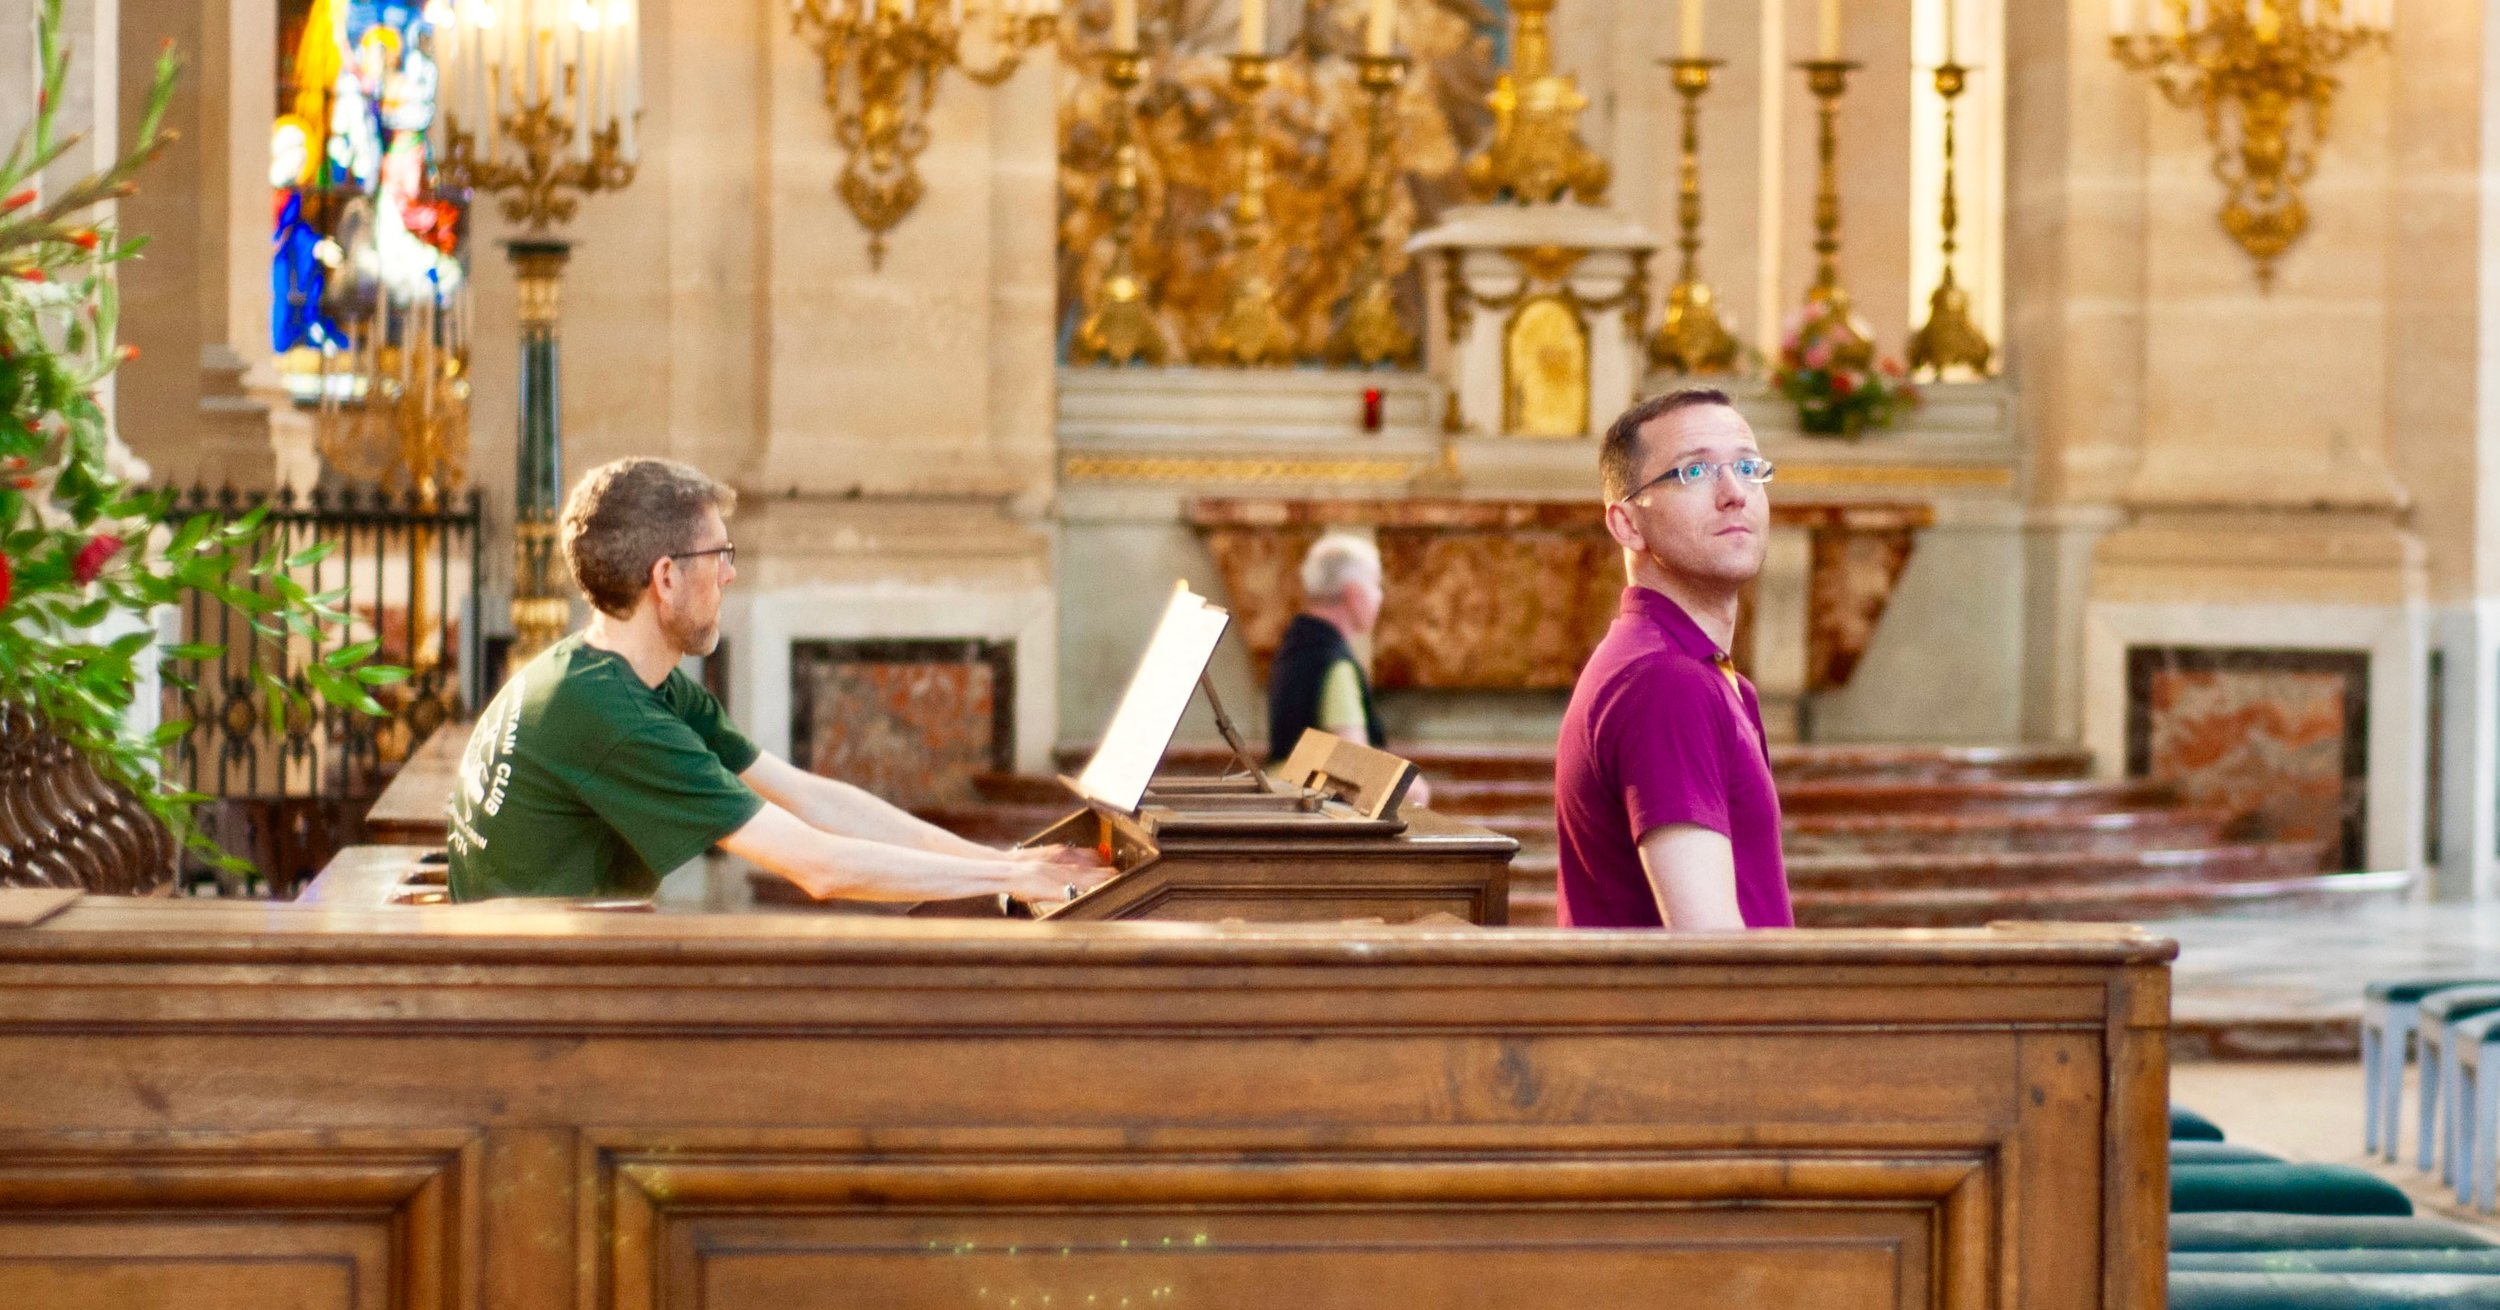 Chris Porter plays the Choir Organ at Saint Louis